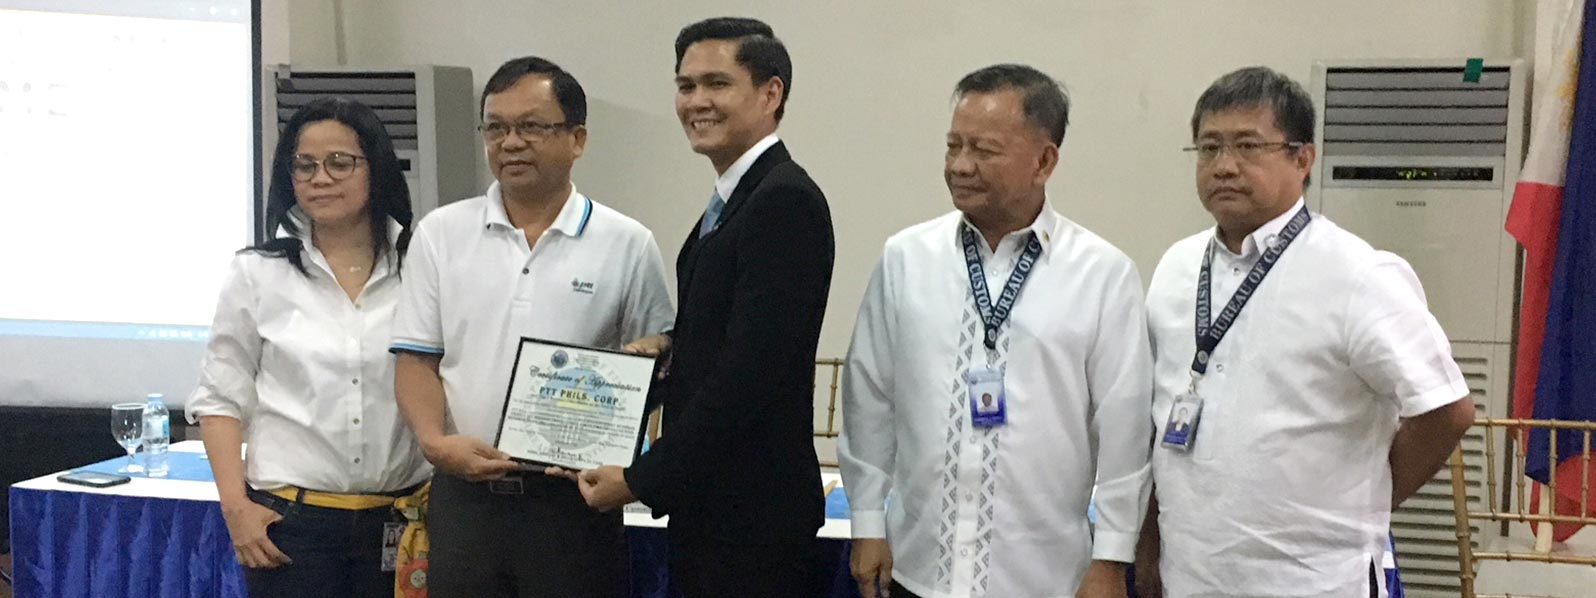 PTT named top taxpayer in Subic Freeport